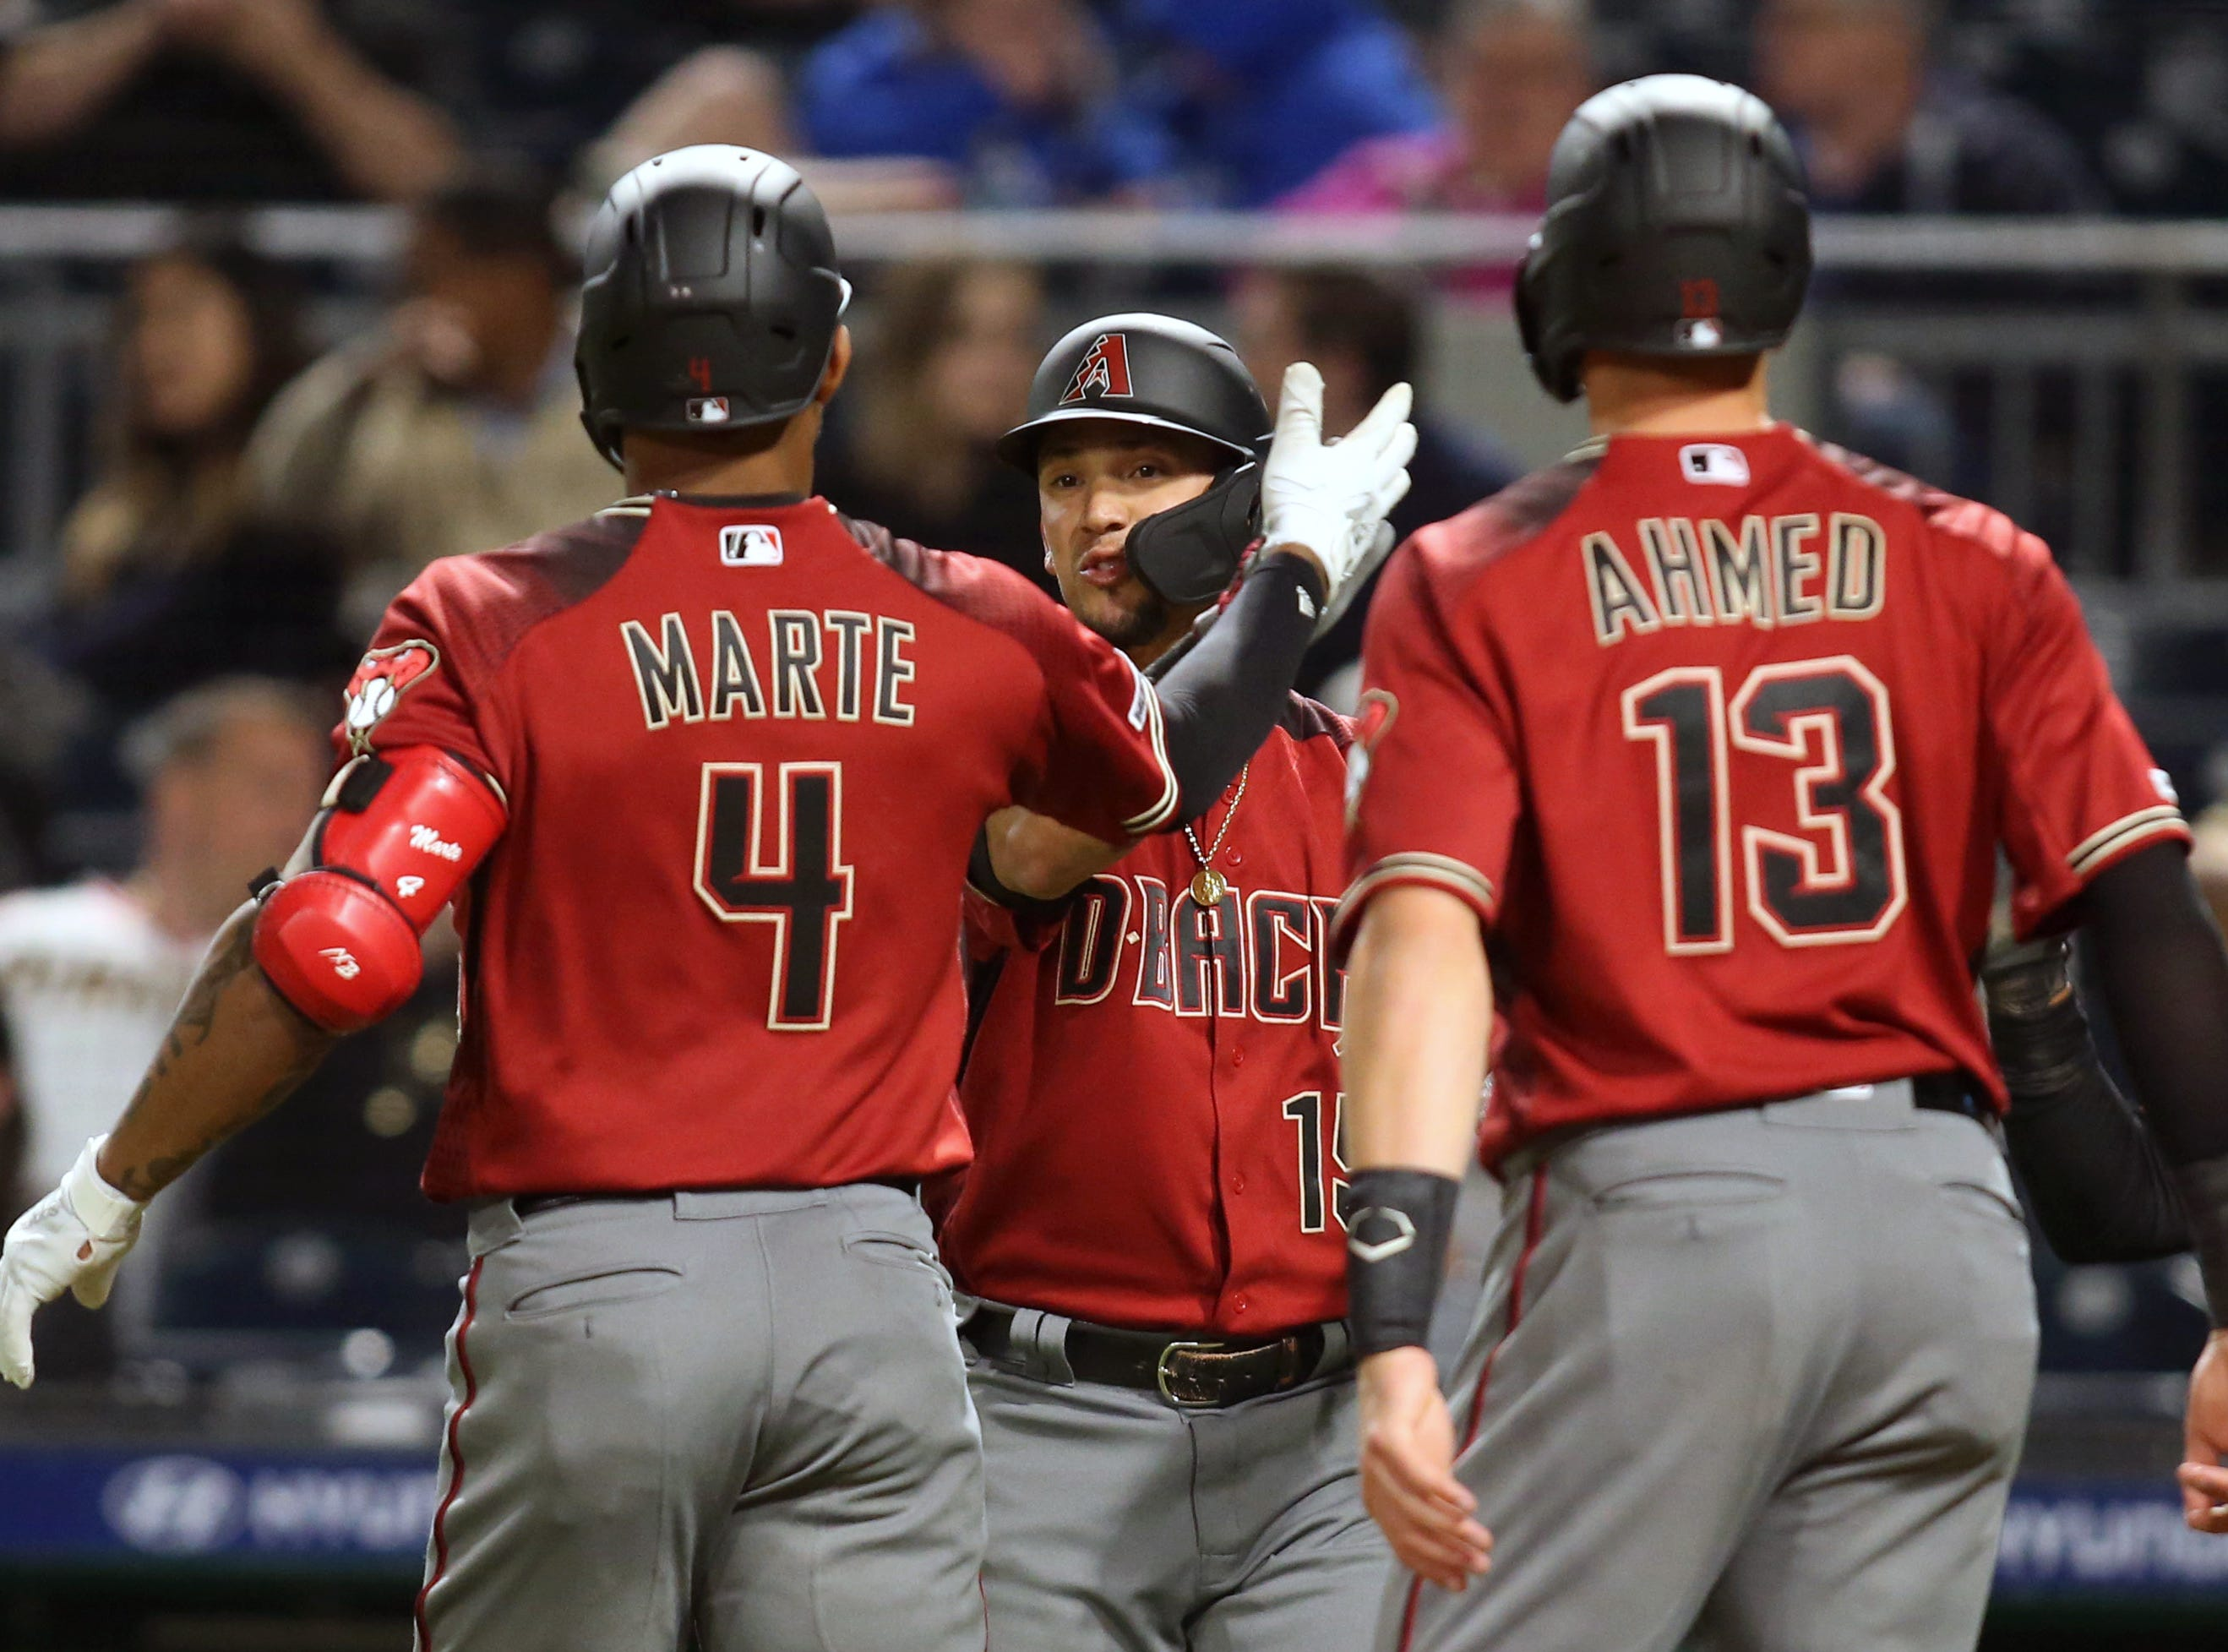 Apr 24, 2019; Pittsburgh, PA, USA;  Arizona Diamondbacks center fielder Ketel Marte (4) celebrates with third baseman Ildemaro Vargas (15) and shortstop Nick Ahmed (13) after hitting a three run home run against the Pittsburgh Pirates during the eighth inning at PNC Park. Mandatory Credit: Charles LeClaire-USA TODAY Sports